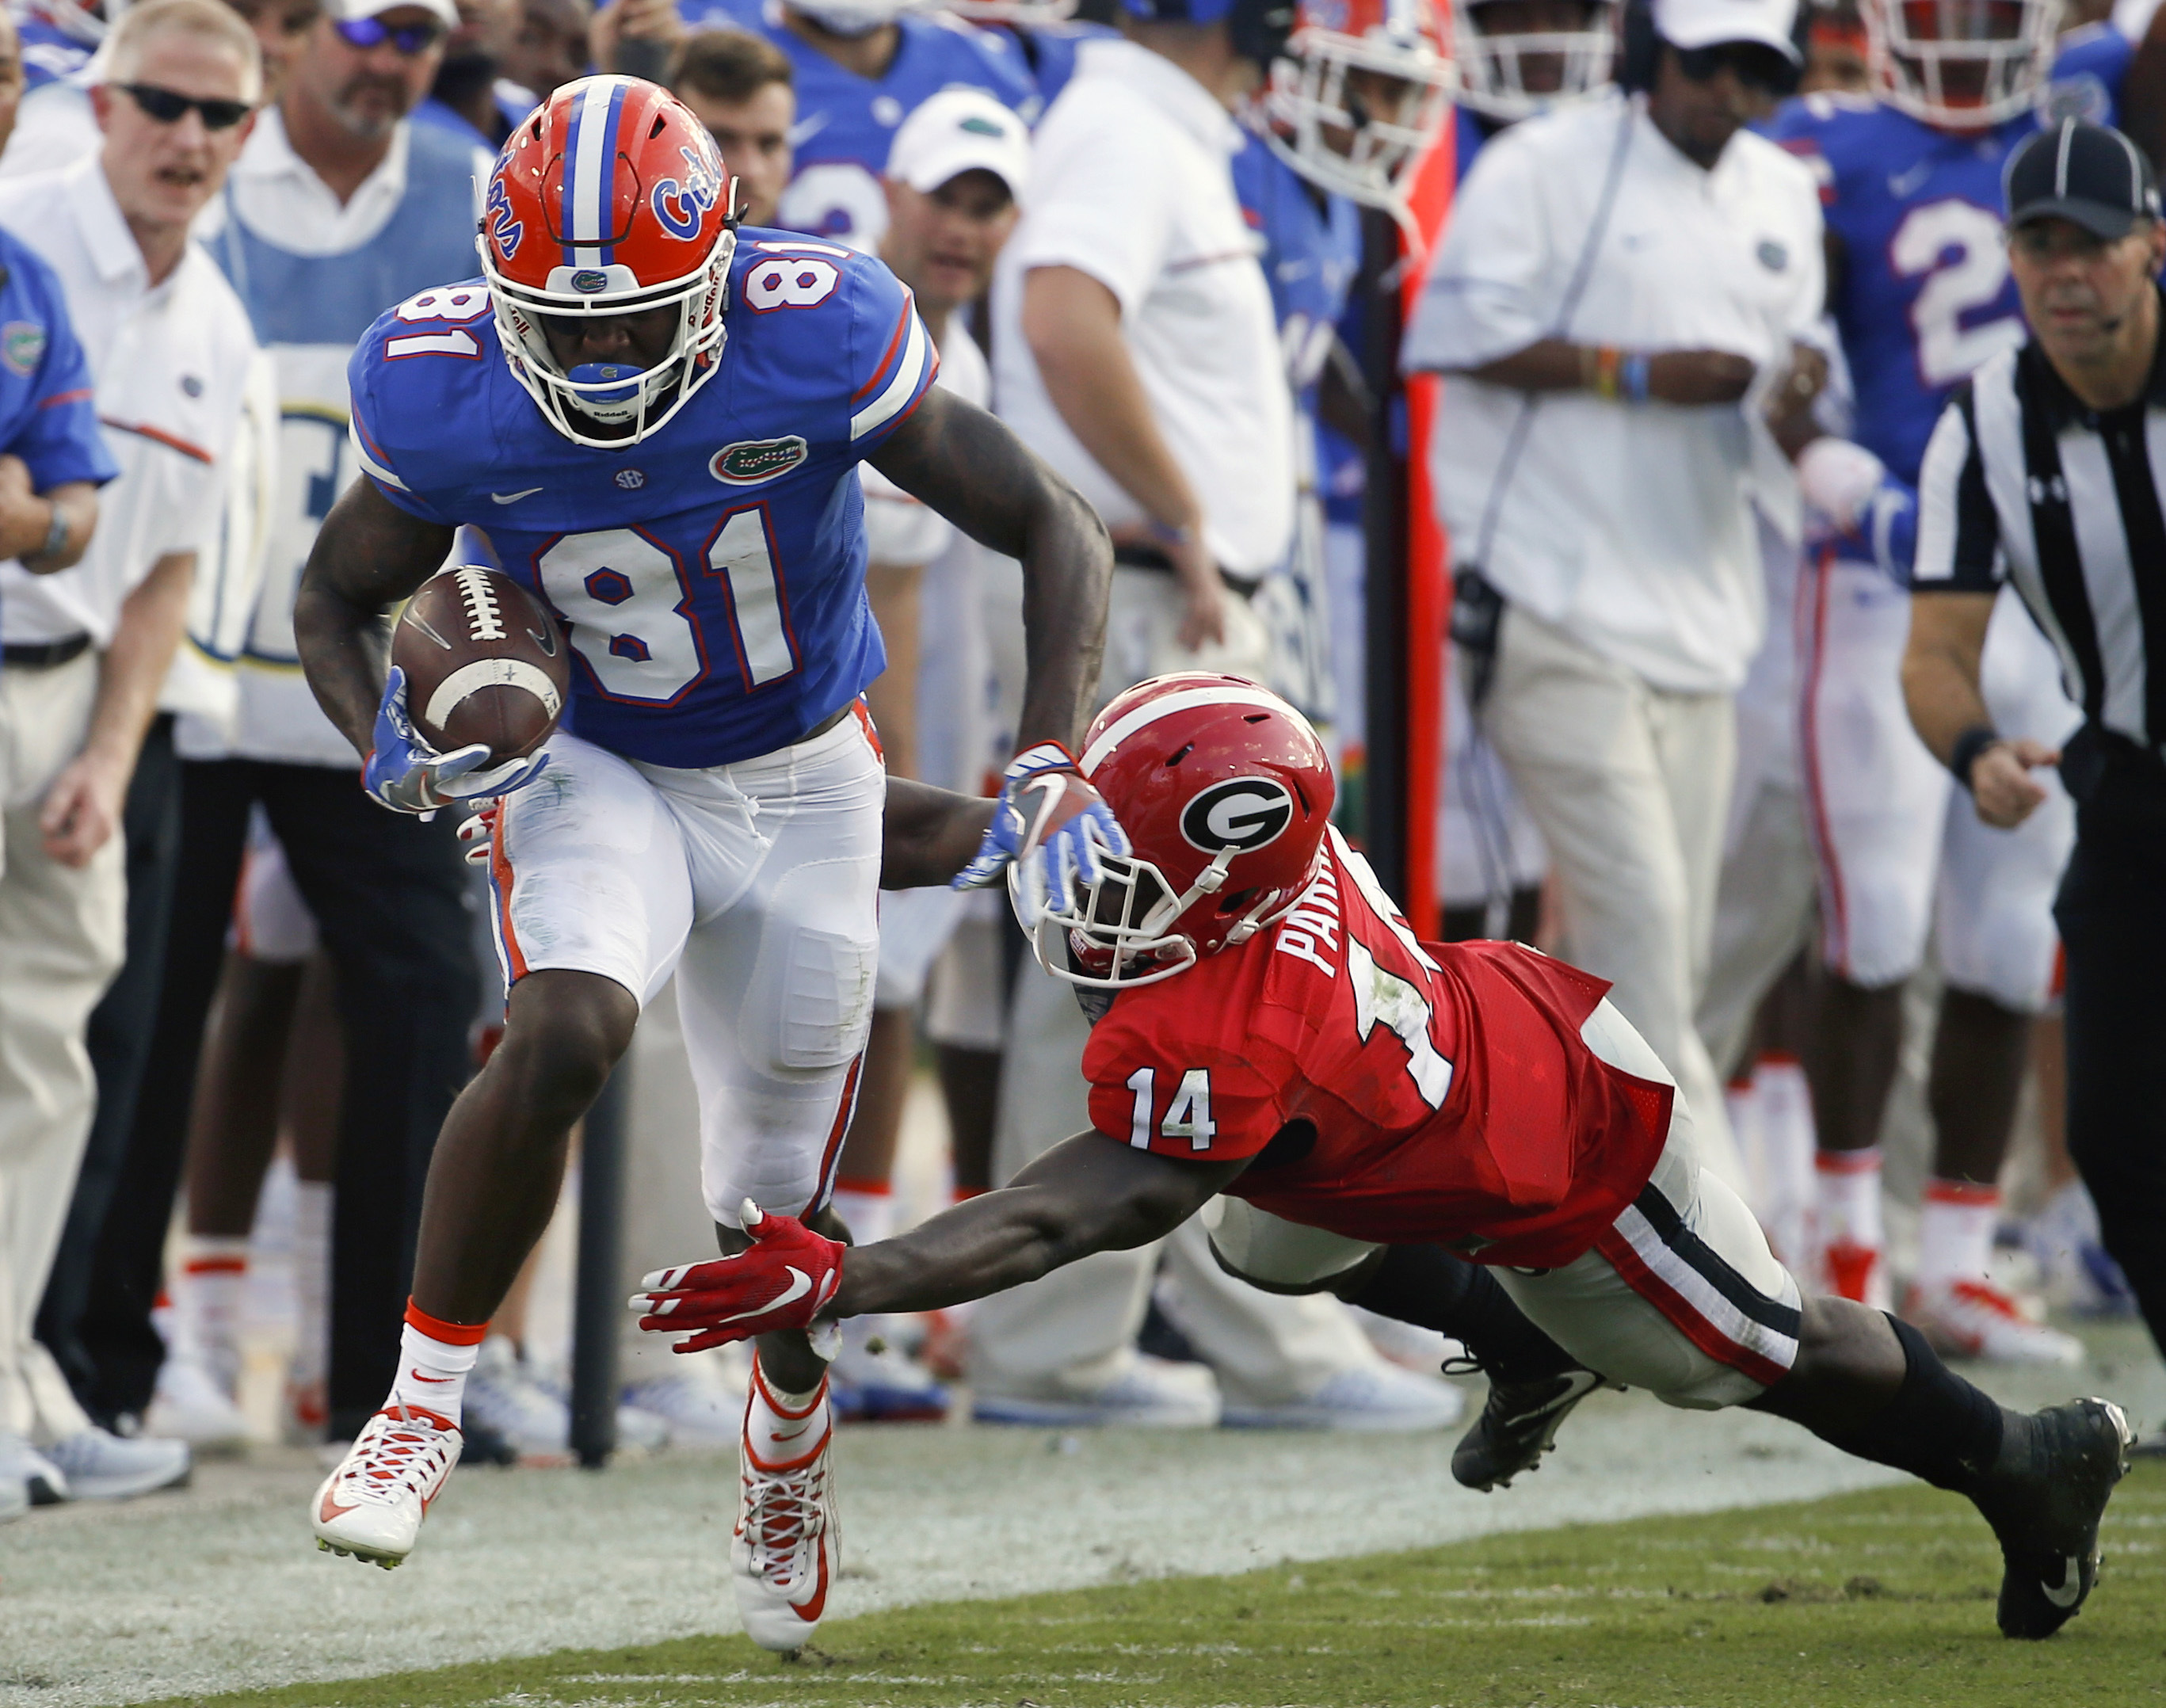 Florida wide receiver Antonio Callaway (81) runs against Georgia cornerback Malkom Parrish (14) during the first half of an NCAA college football game, Saturday, Oct. 29, 2016, in Jacksonville, Fla. (AP Photo/Stephen B. Morton)